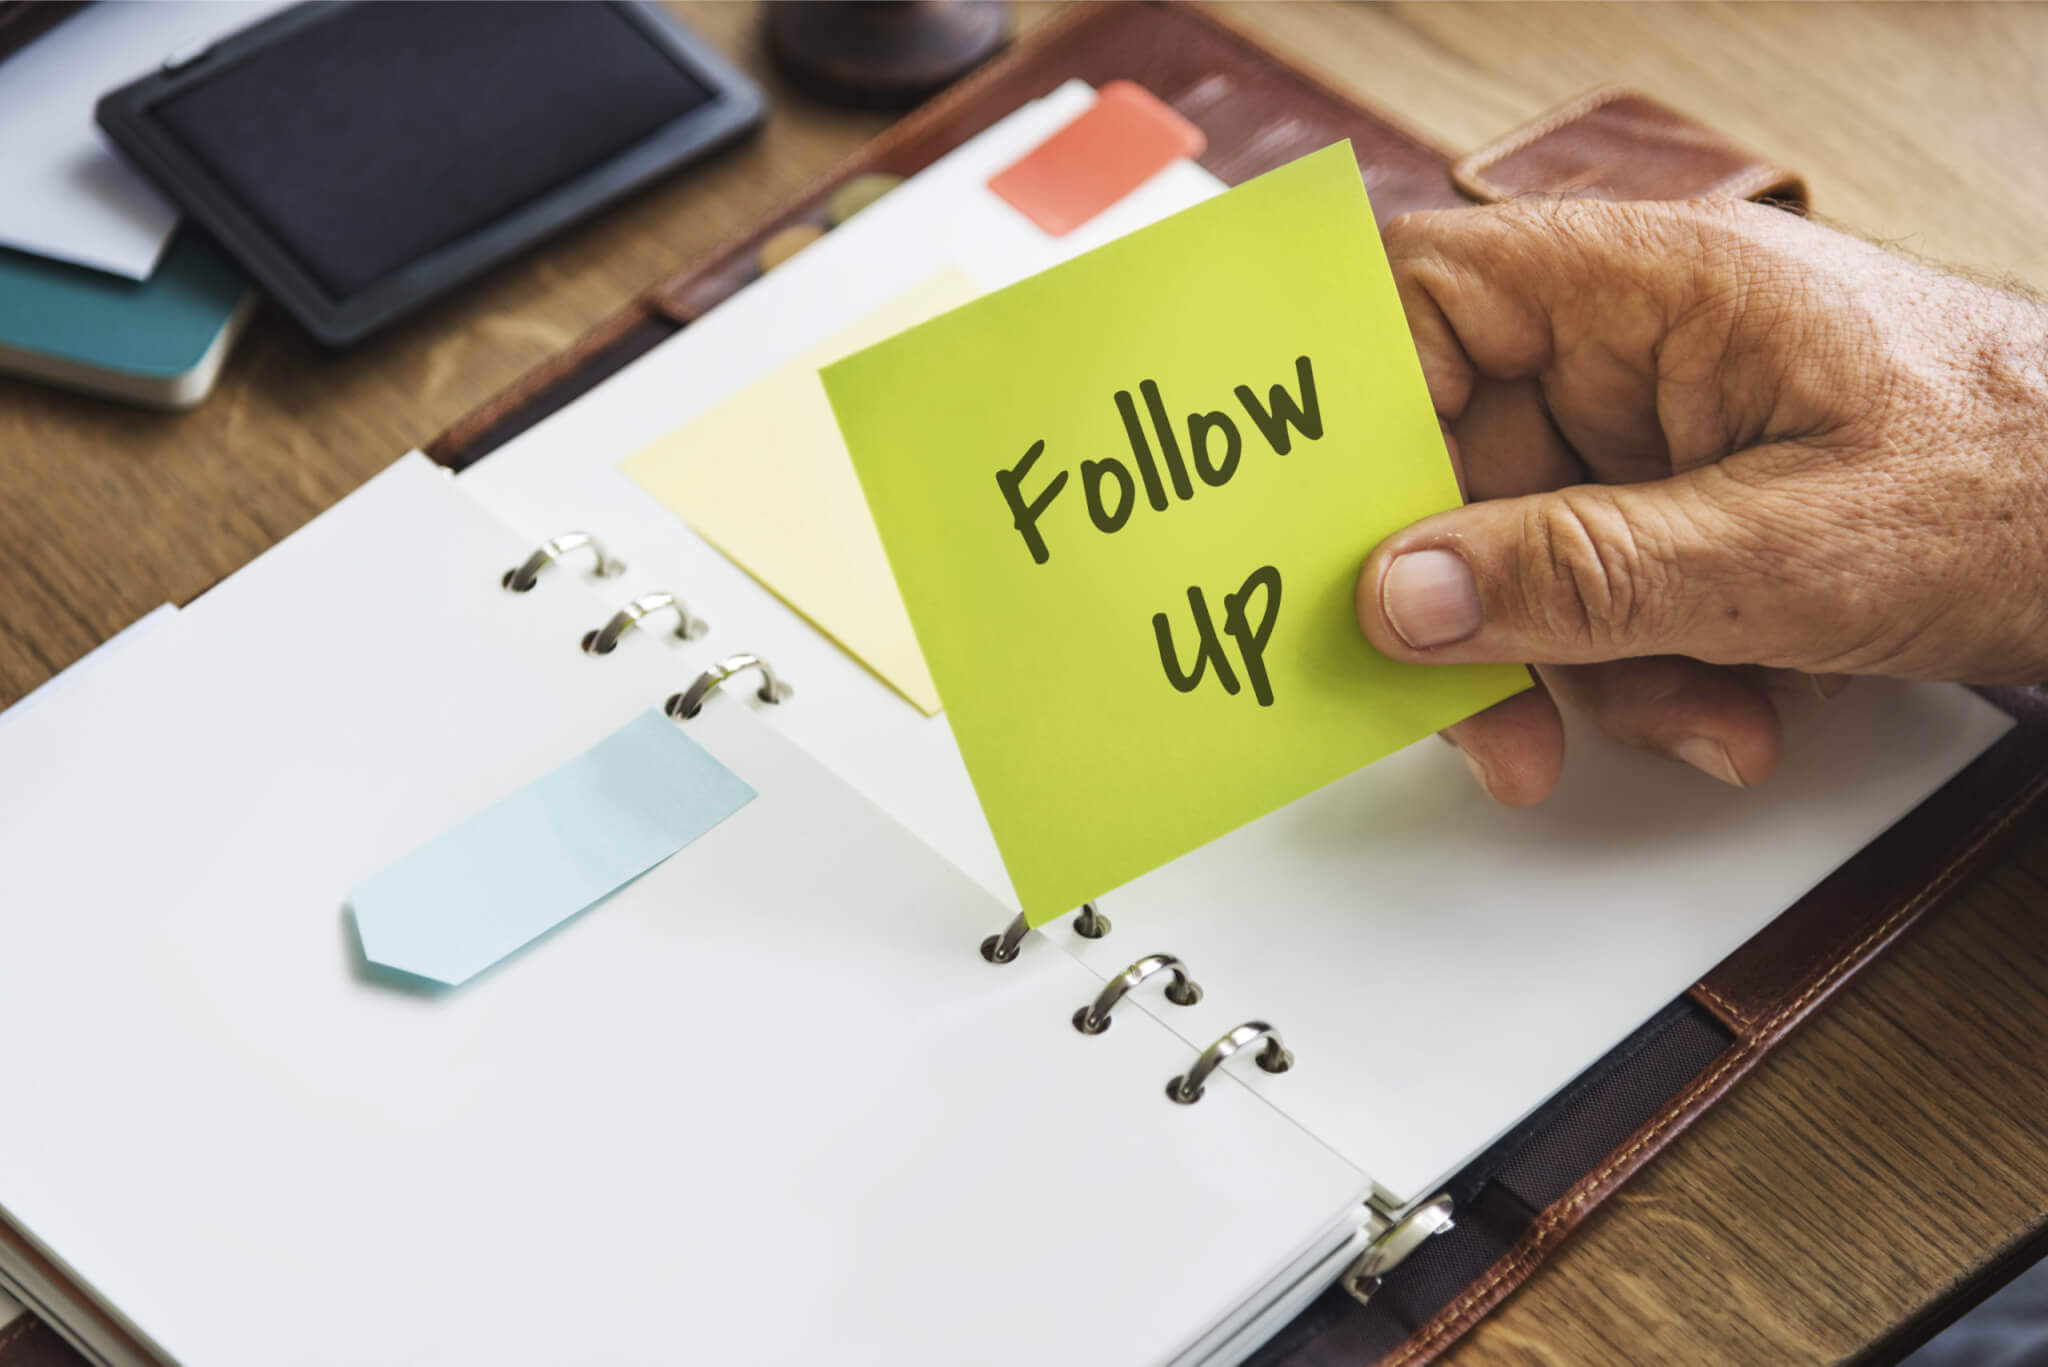 Everything that you are willing to know about Sales Follow-up in a nutshell!